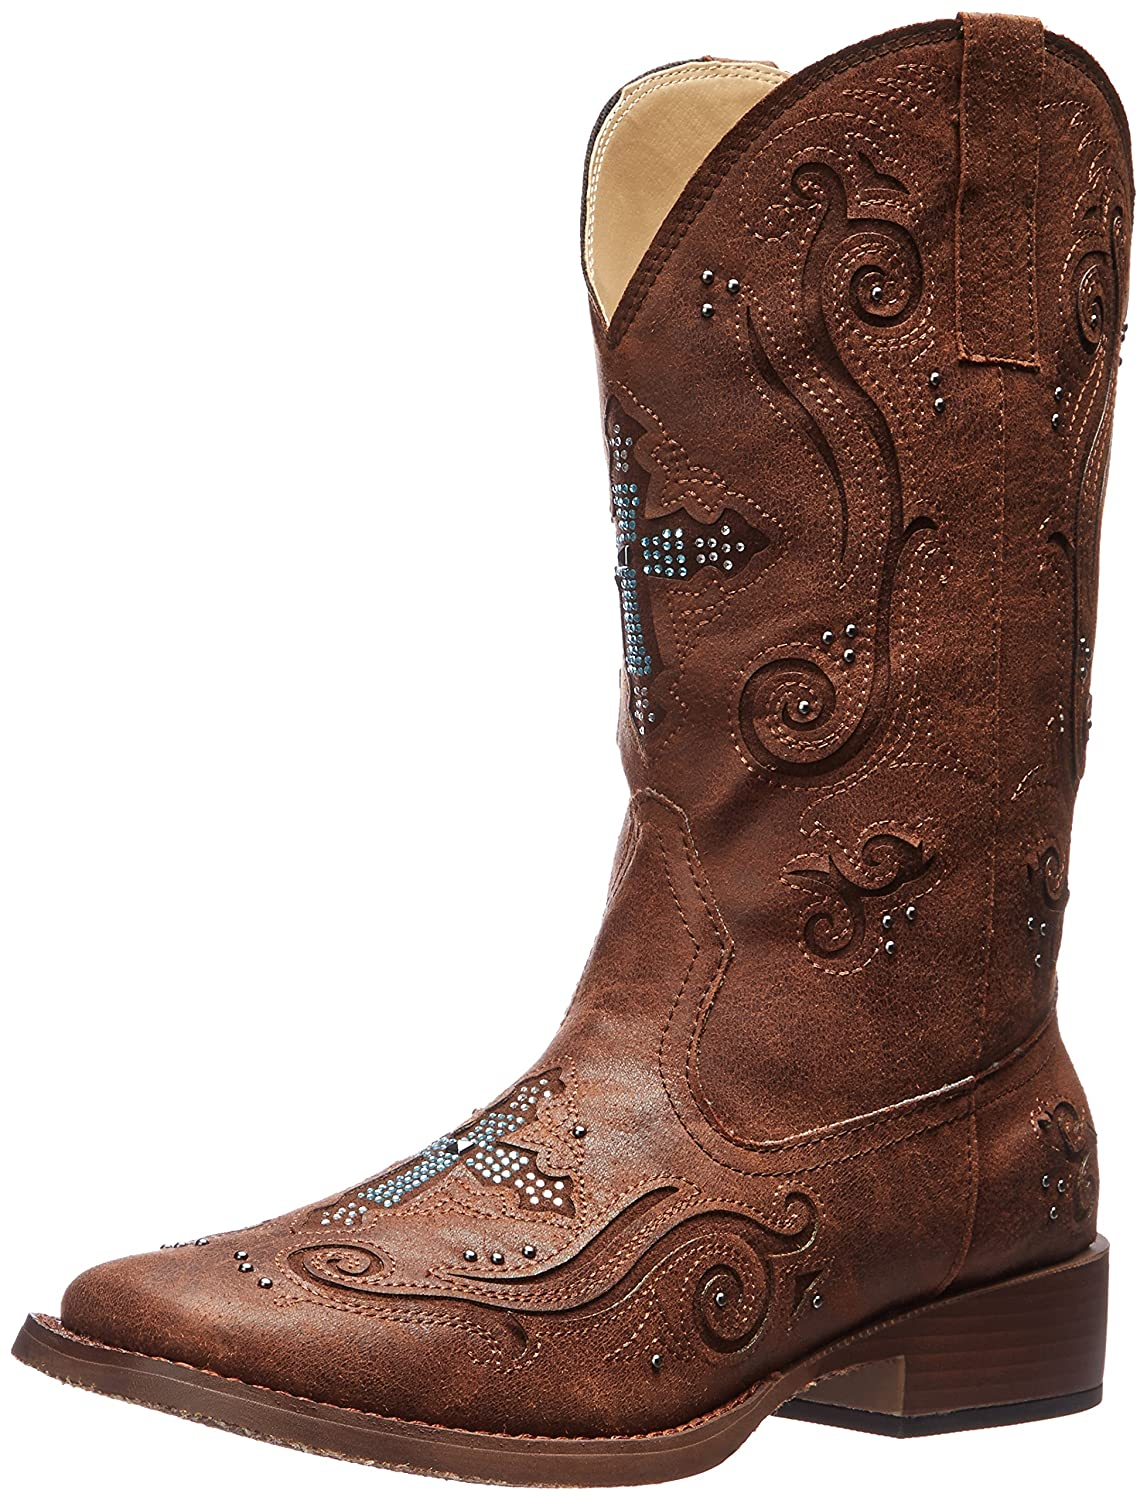 Roper Women's Crossed Out Western Boot B00JE8XQDC 6 B(M) US|Brown